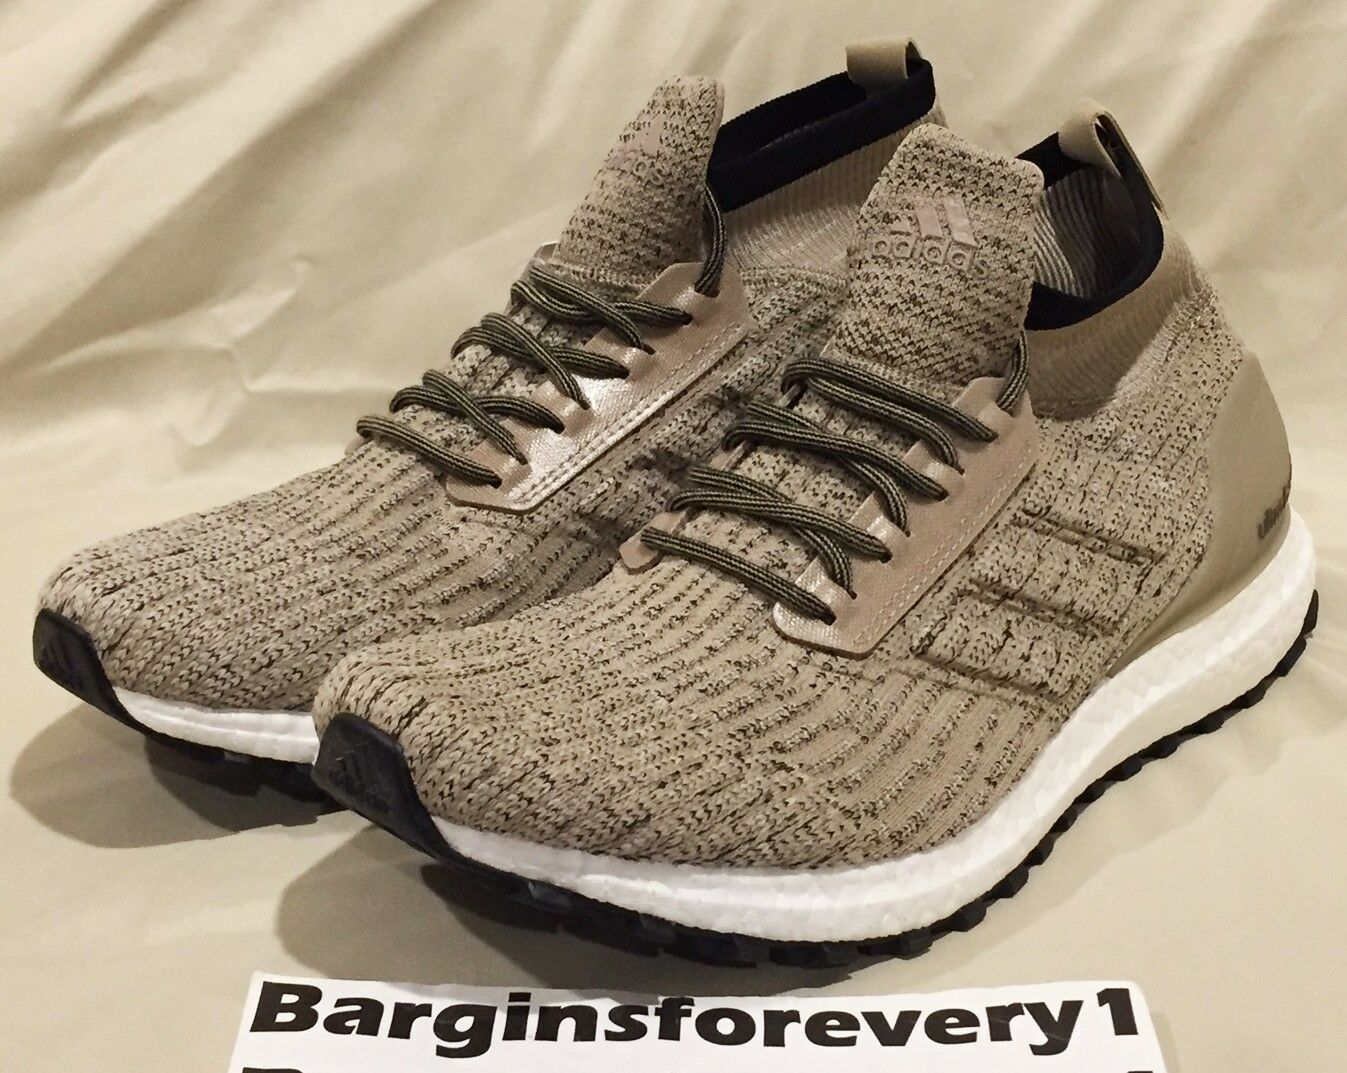 New Adidas UltraBOOST All Terrain LTD - Size 7.5 - Trace Khaki - CG3001